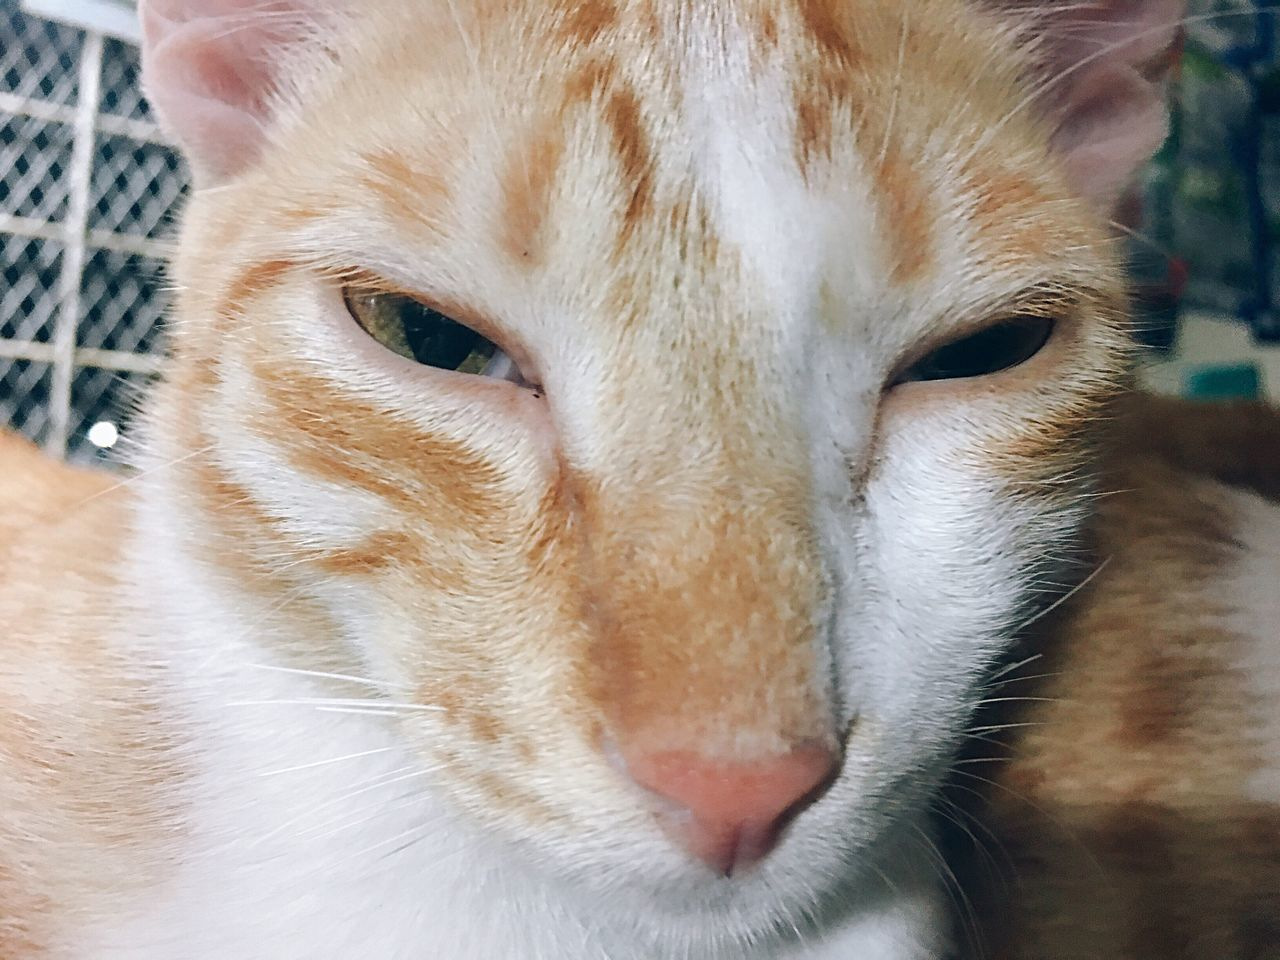 Watcha lookin at? 🐱 Pets Domestic Animals Domestic Cat Mammal One Animal Animal Themes Feline Portrait Close-up Whisker Animal Head  No People Looking At Camera Indoors  Dog Ginger Cat Day Eyeem Philippines